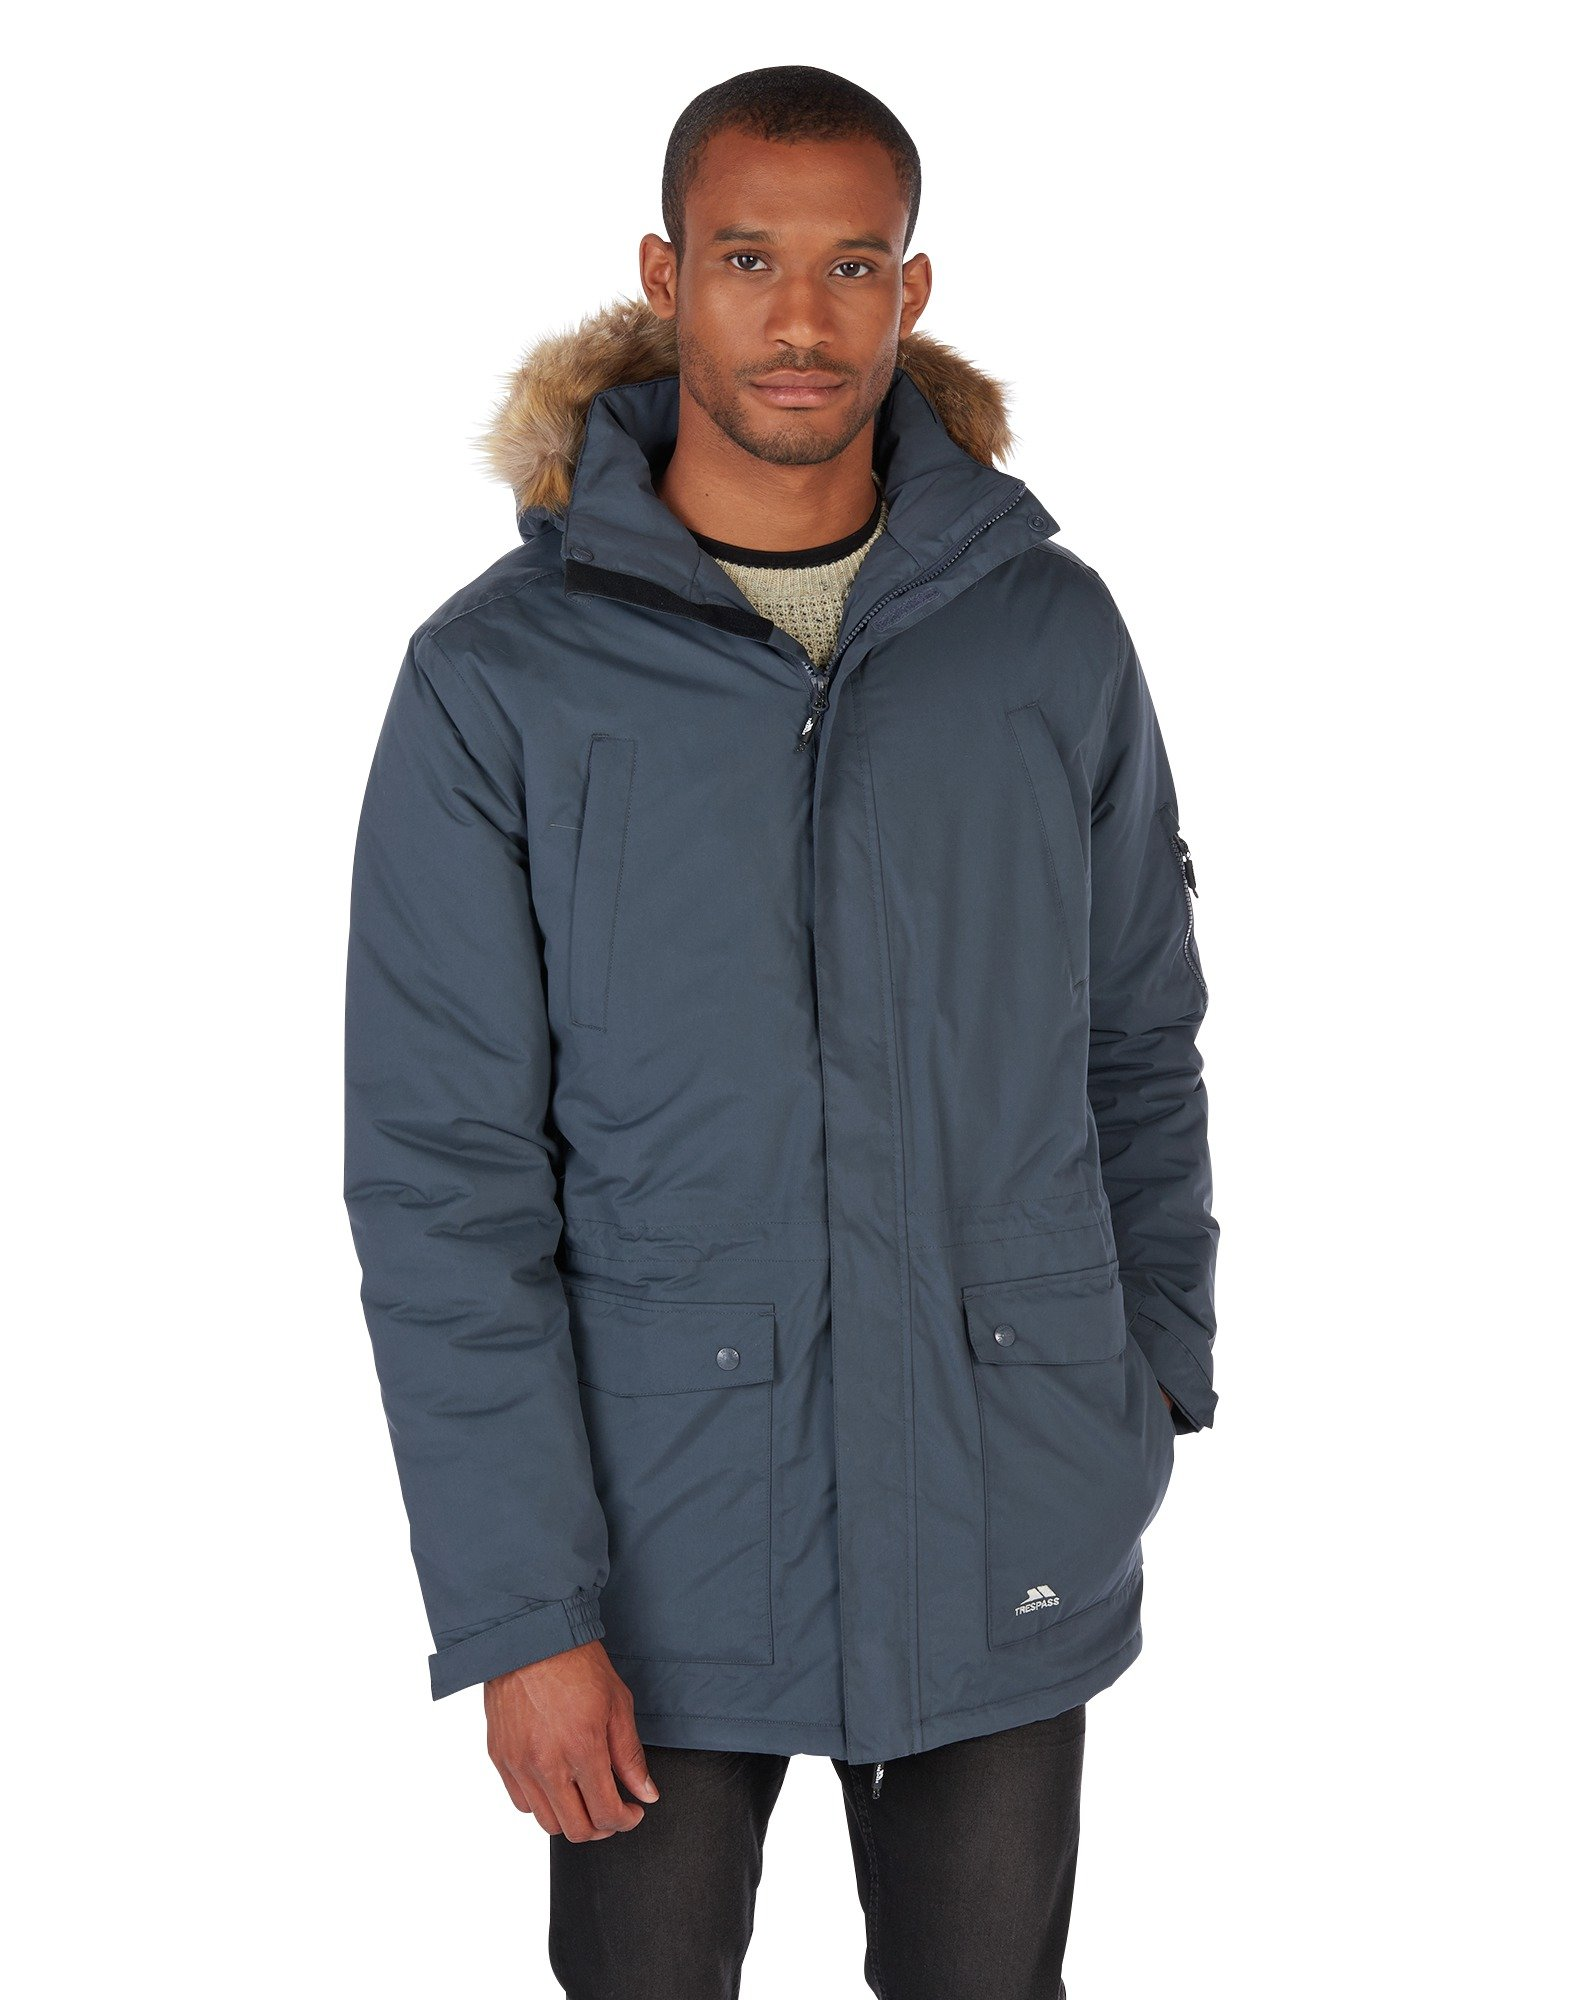 Image of Trespass Grey Parker Jacket - Small